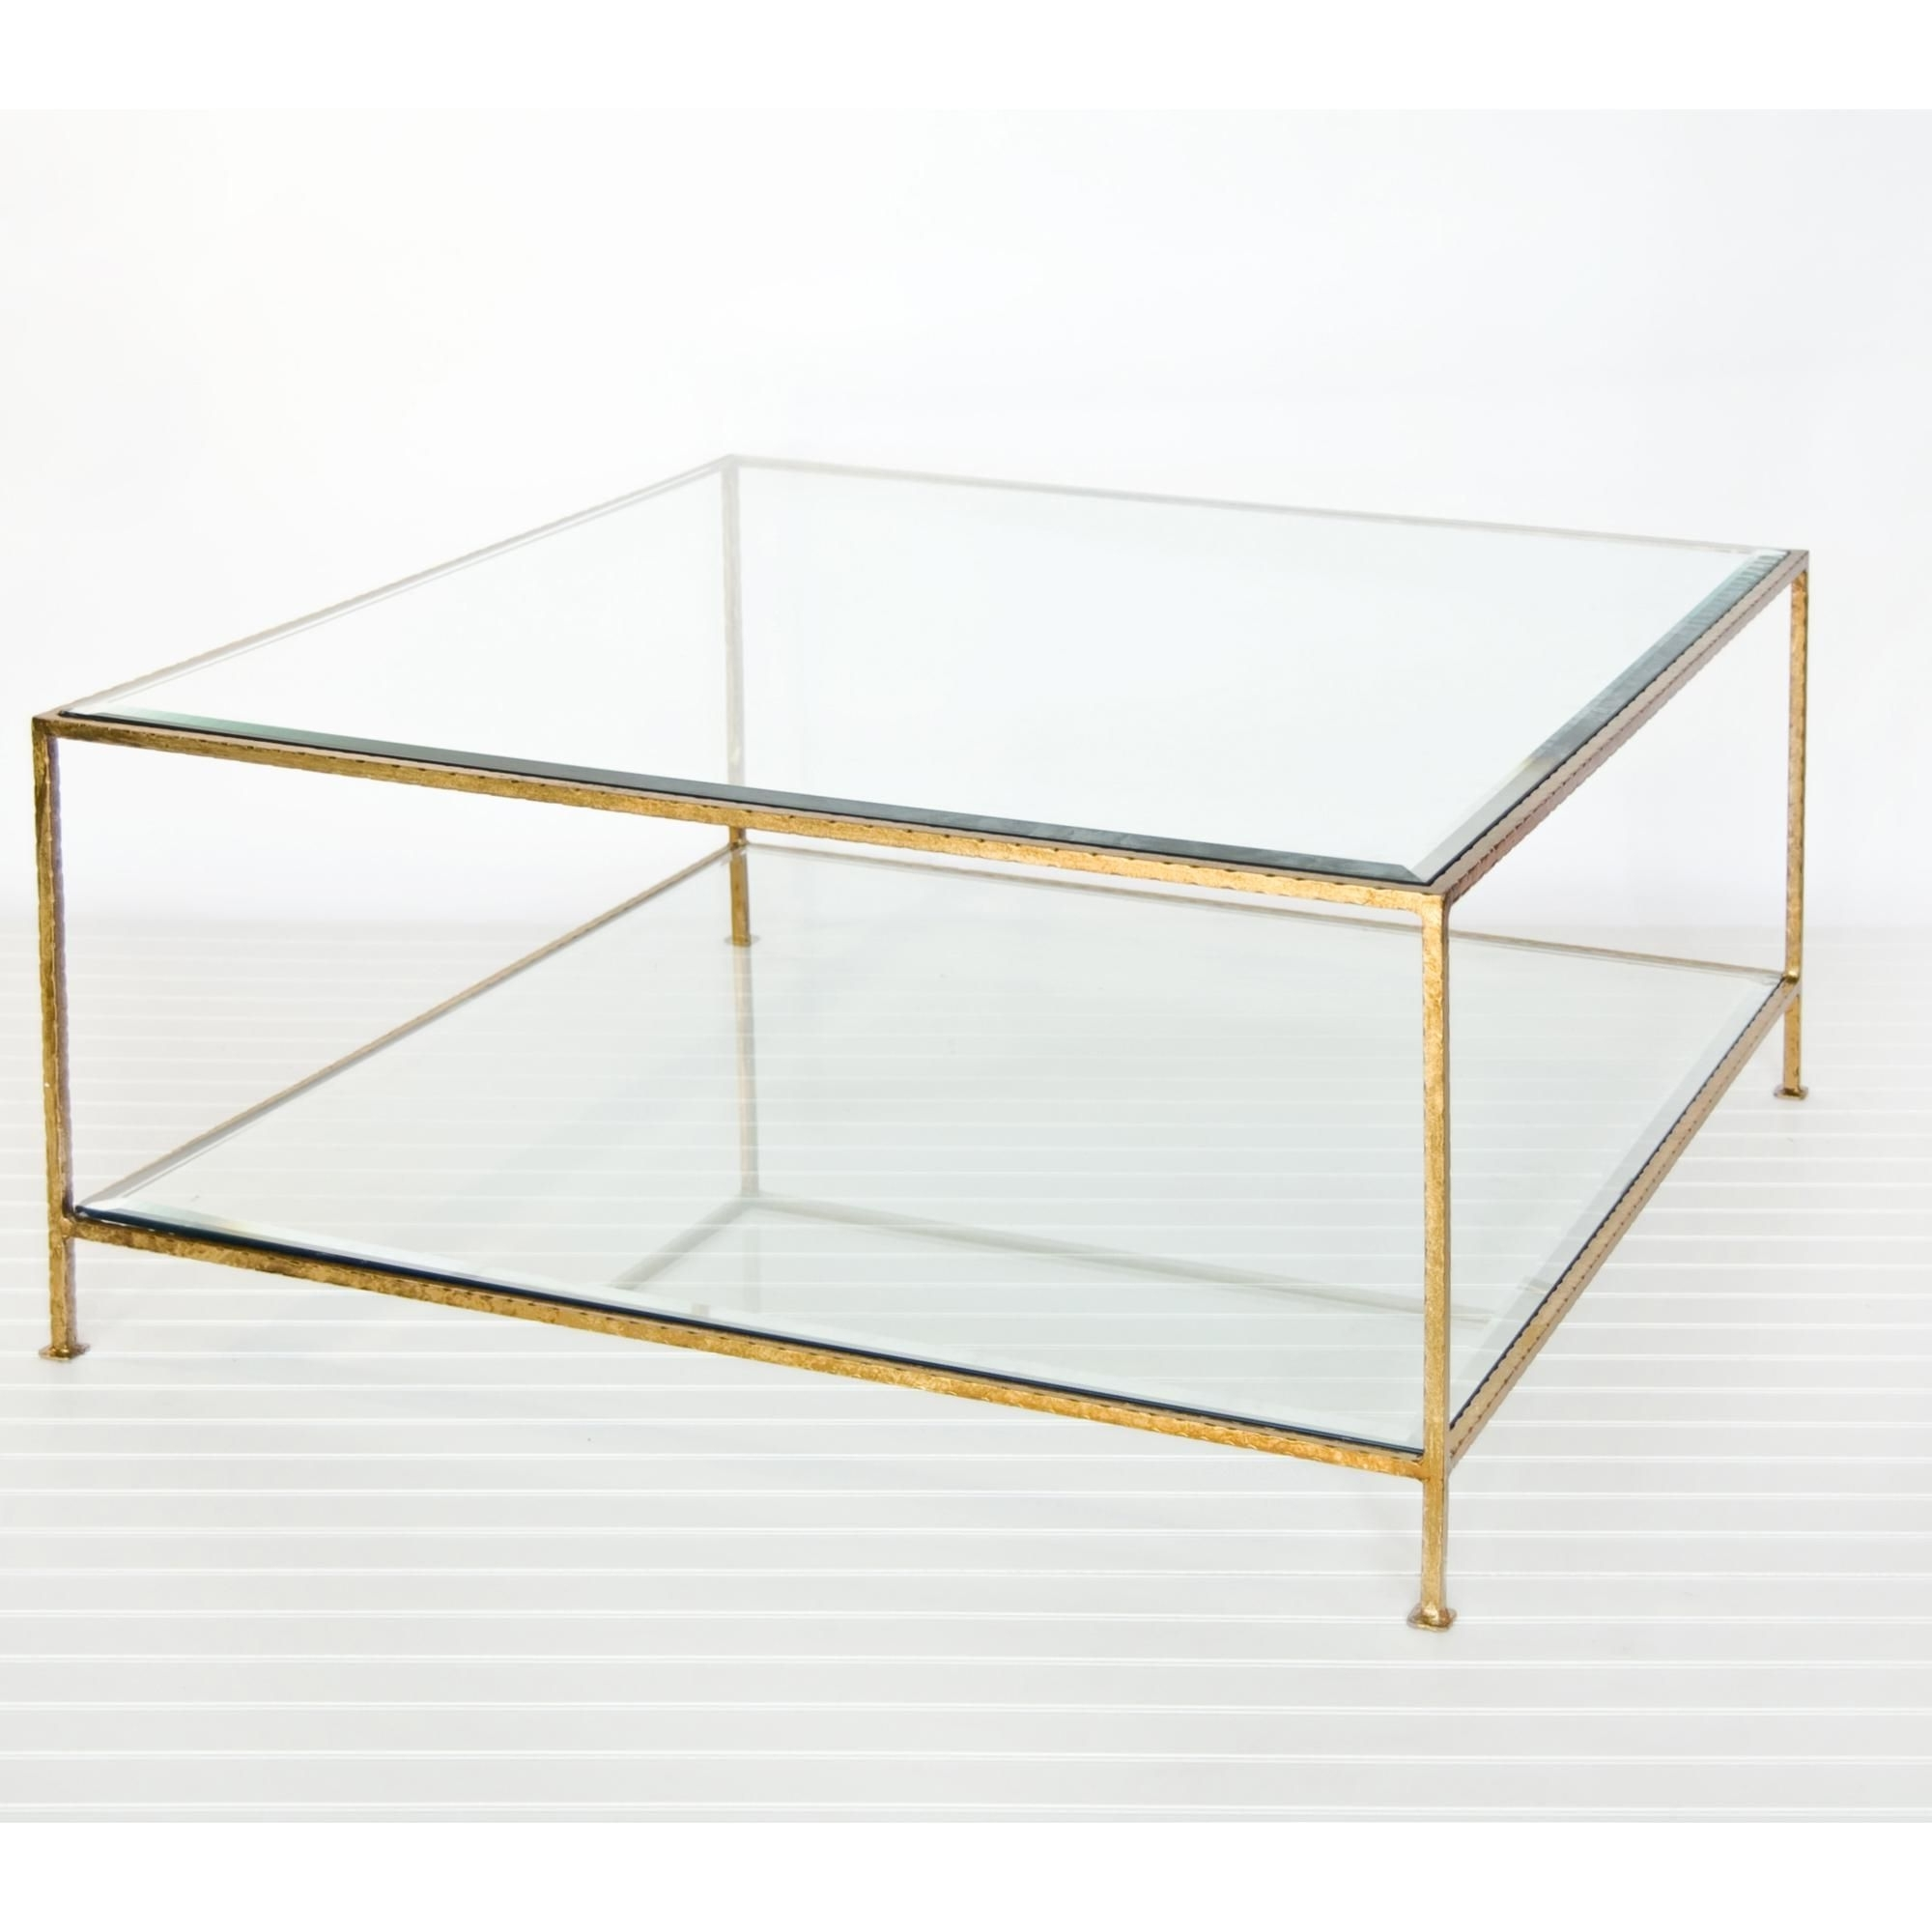 Worlds Away Quadro Square Coffee Table With Beveled Glass – Hammered Inside Most Recent Rectangular Brass Finish And Glass Coffee Tables (View 20 of 20)